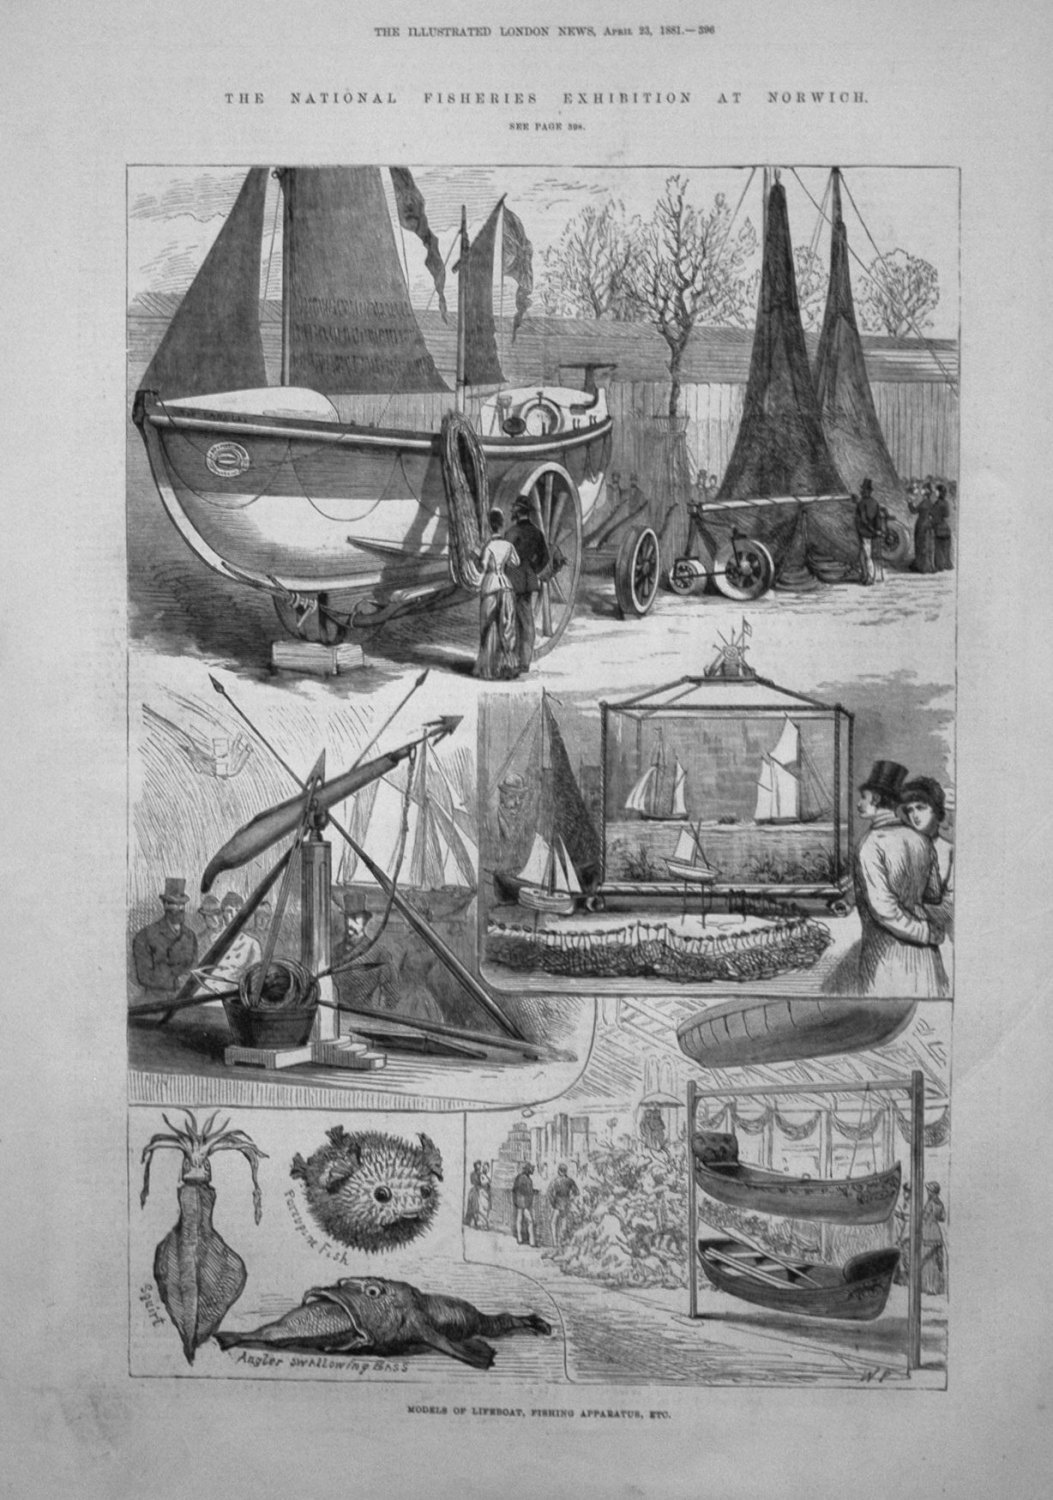 The National Fisheries Exhibition at Norwich. 1881